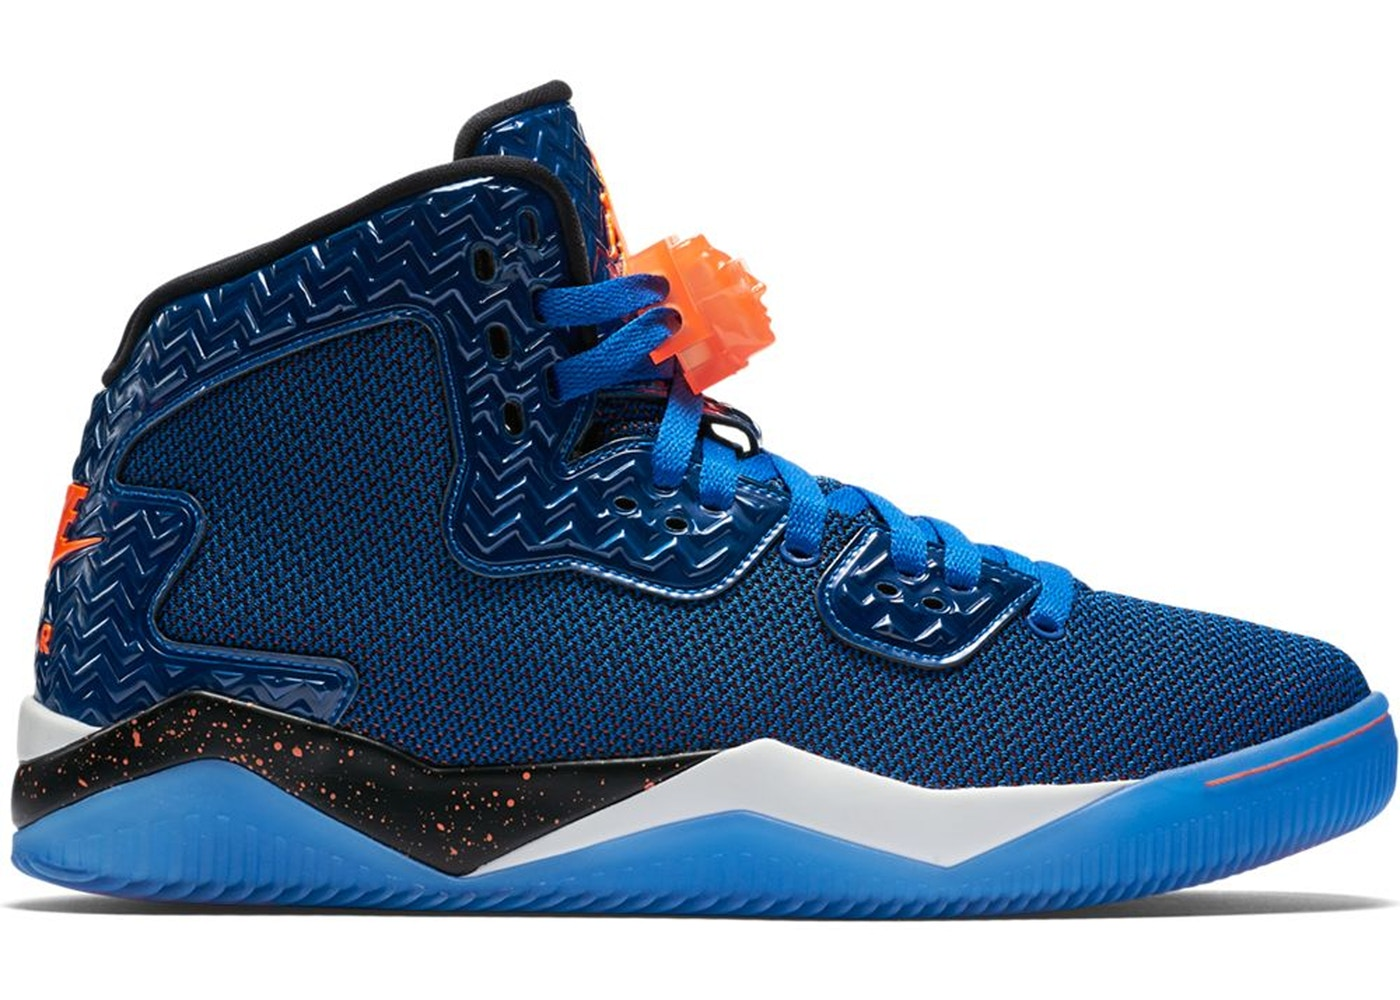 ナイキ ジョーダン JORDAN ニックス スニーカー 【 SPIKE FORTY KNICKS BLUE GAME ROYAL TOTAL ORANGEWHITEBLACK 】 メンズ